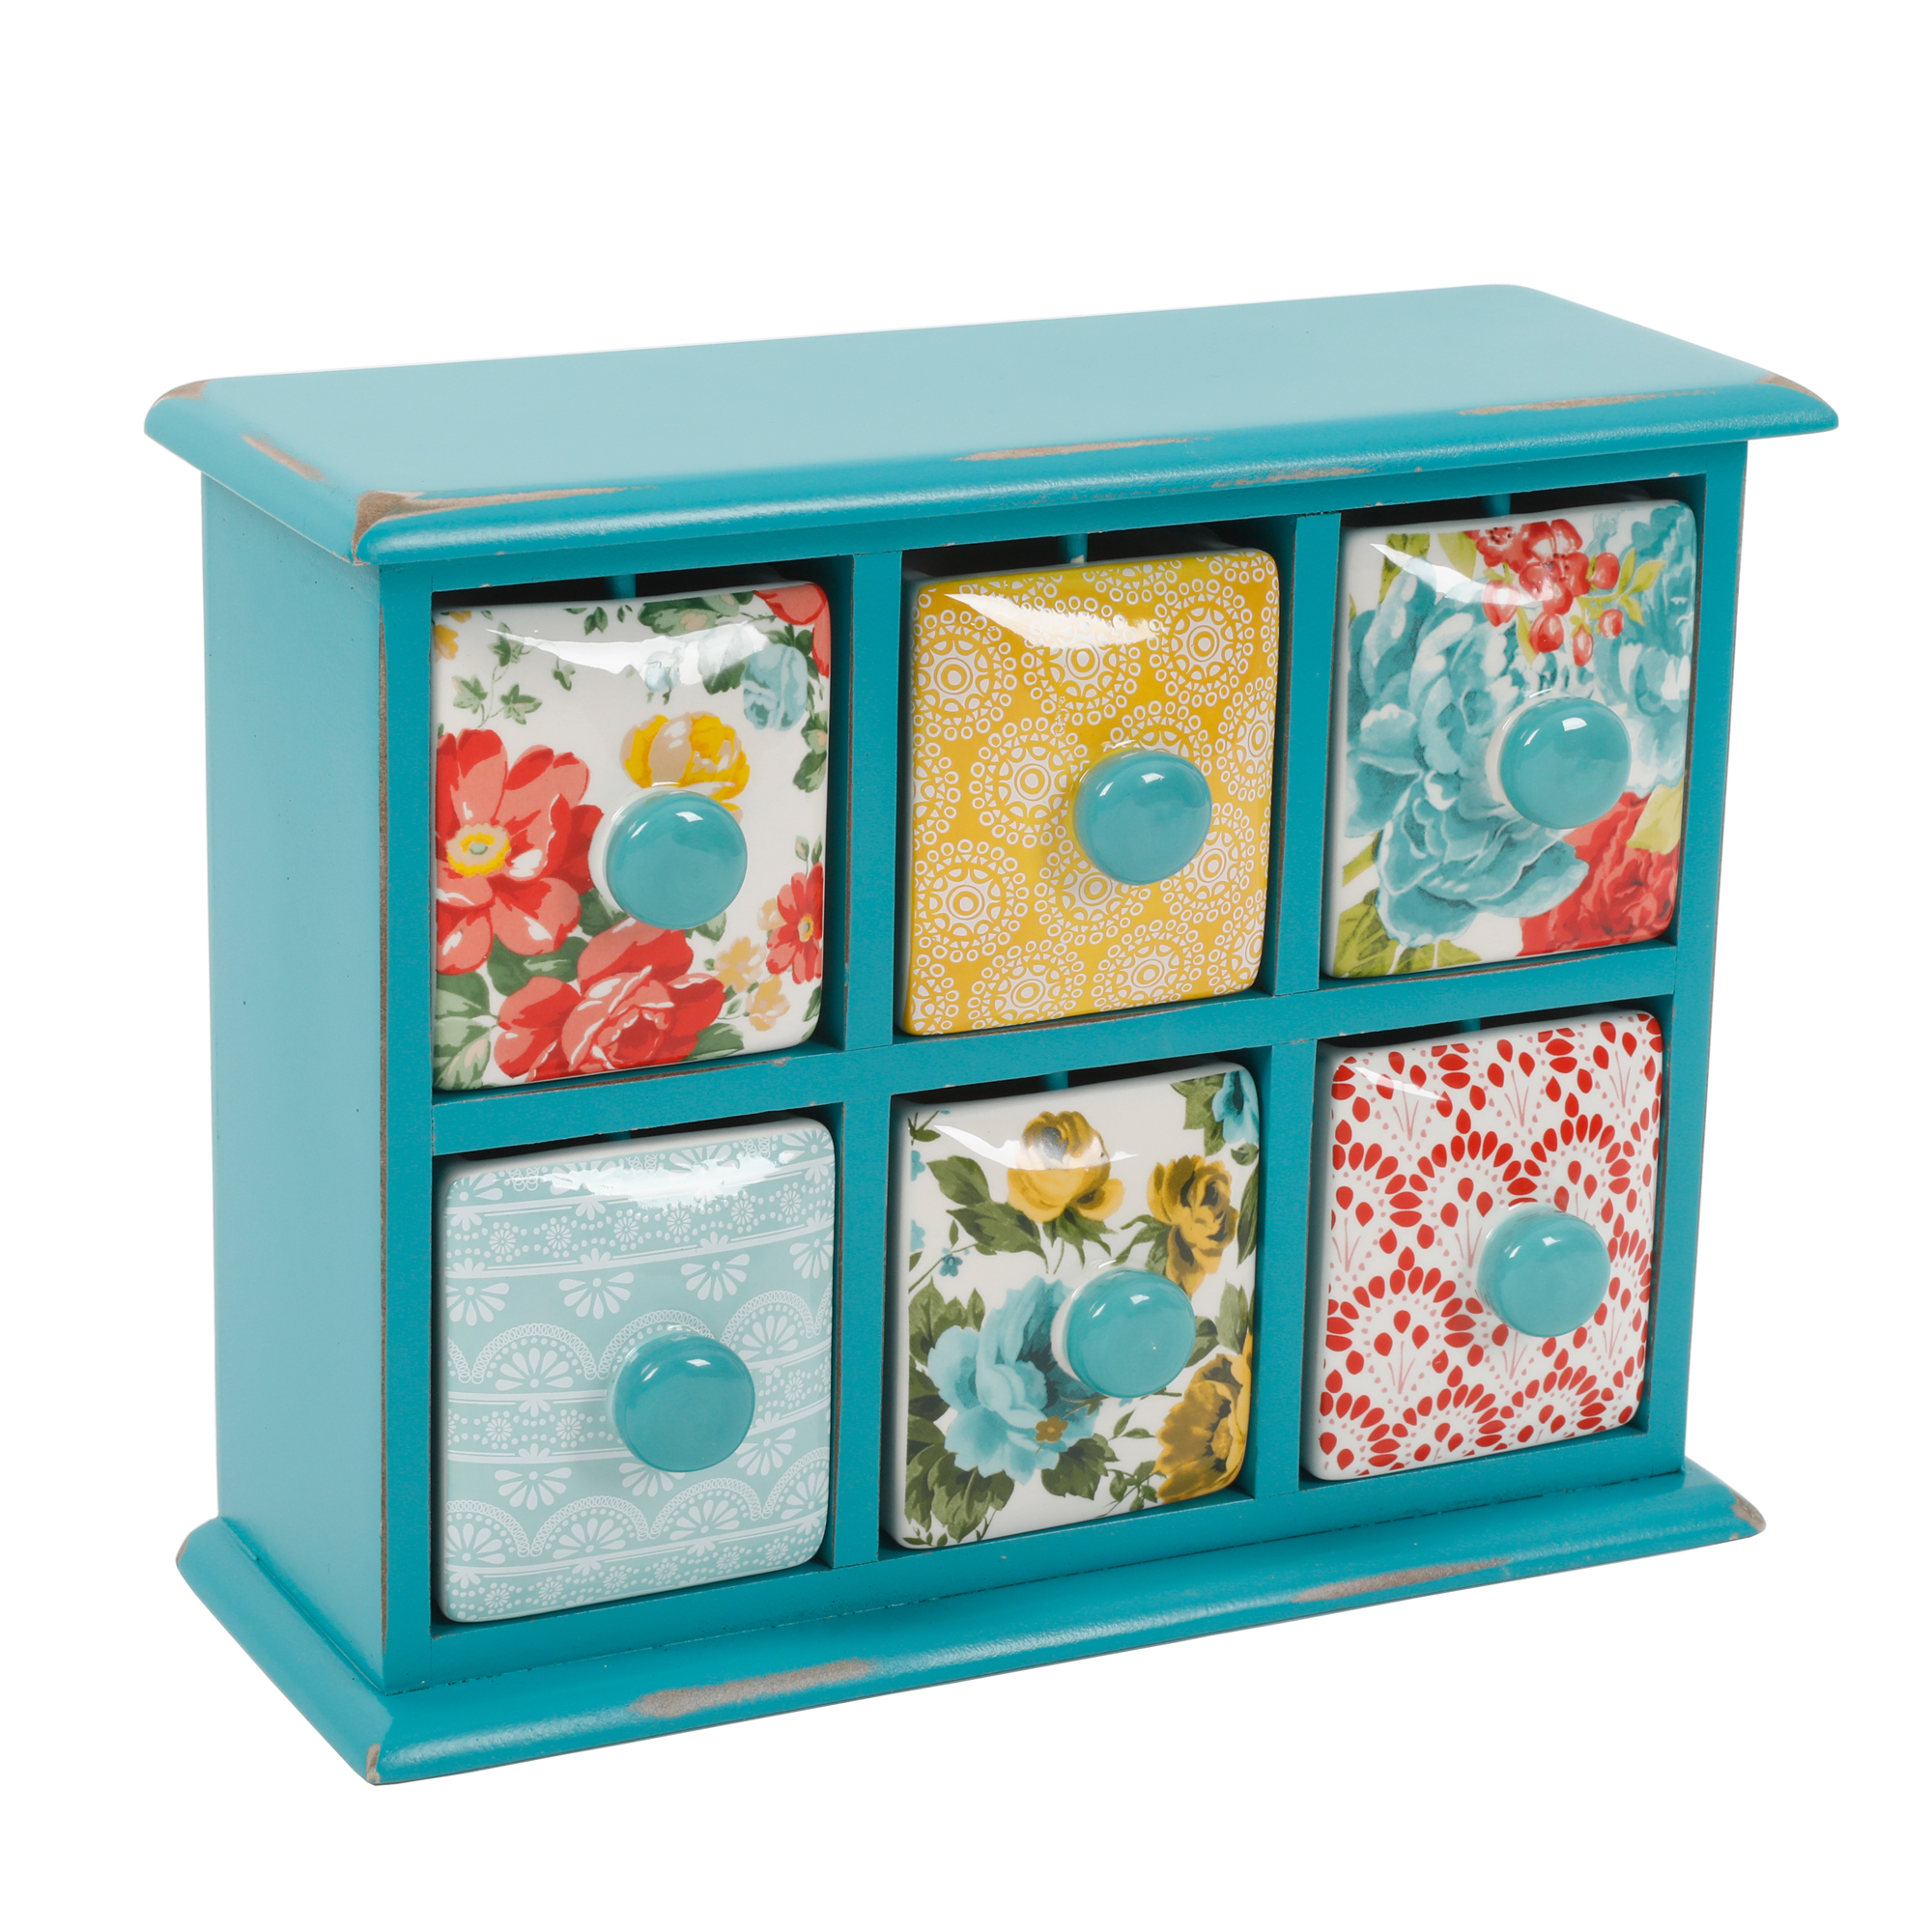 The Pioneer Woman Vintage Floral 6-Drawer Spice /Tea Box